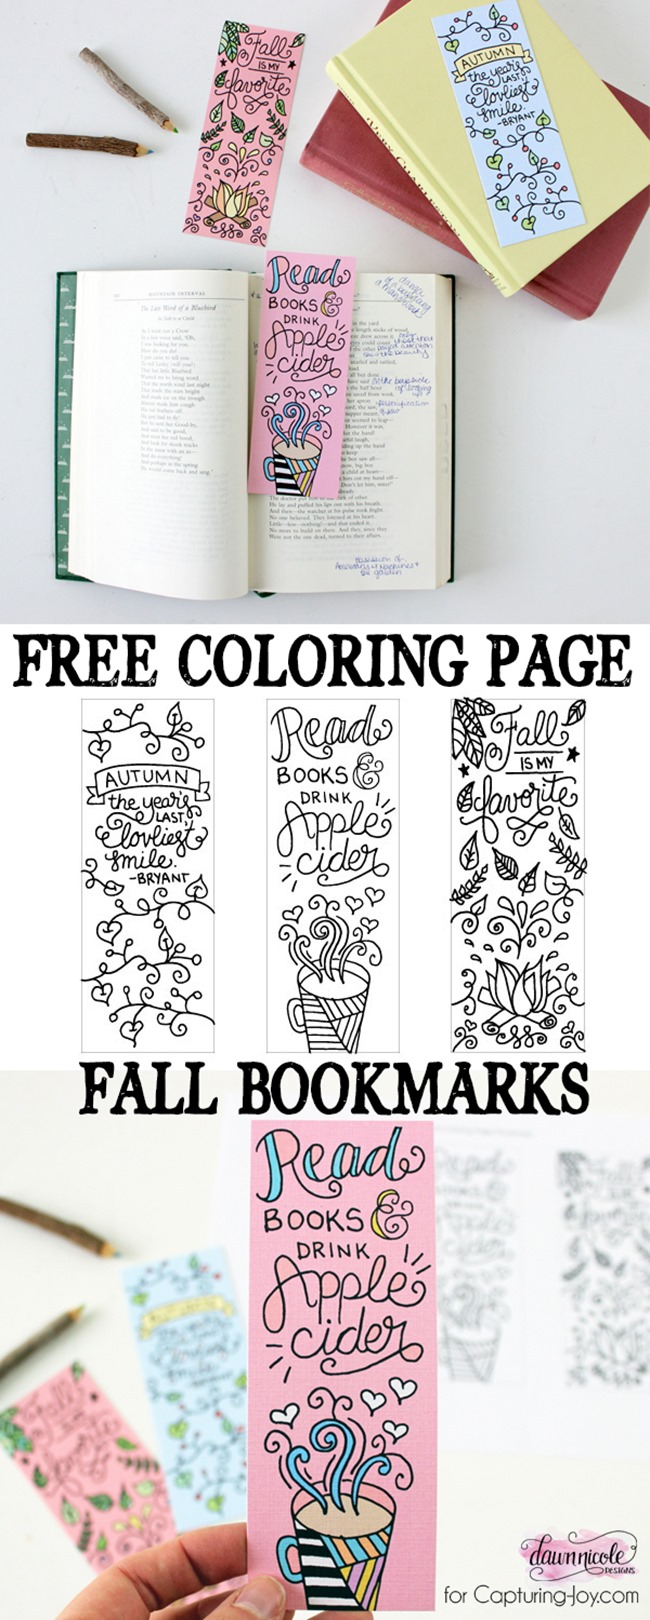 12 Fall Coloring Pages for Adults - Bookmarks